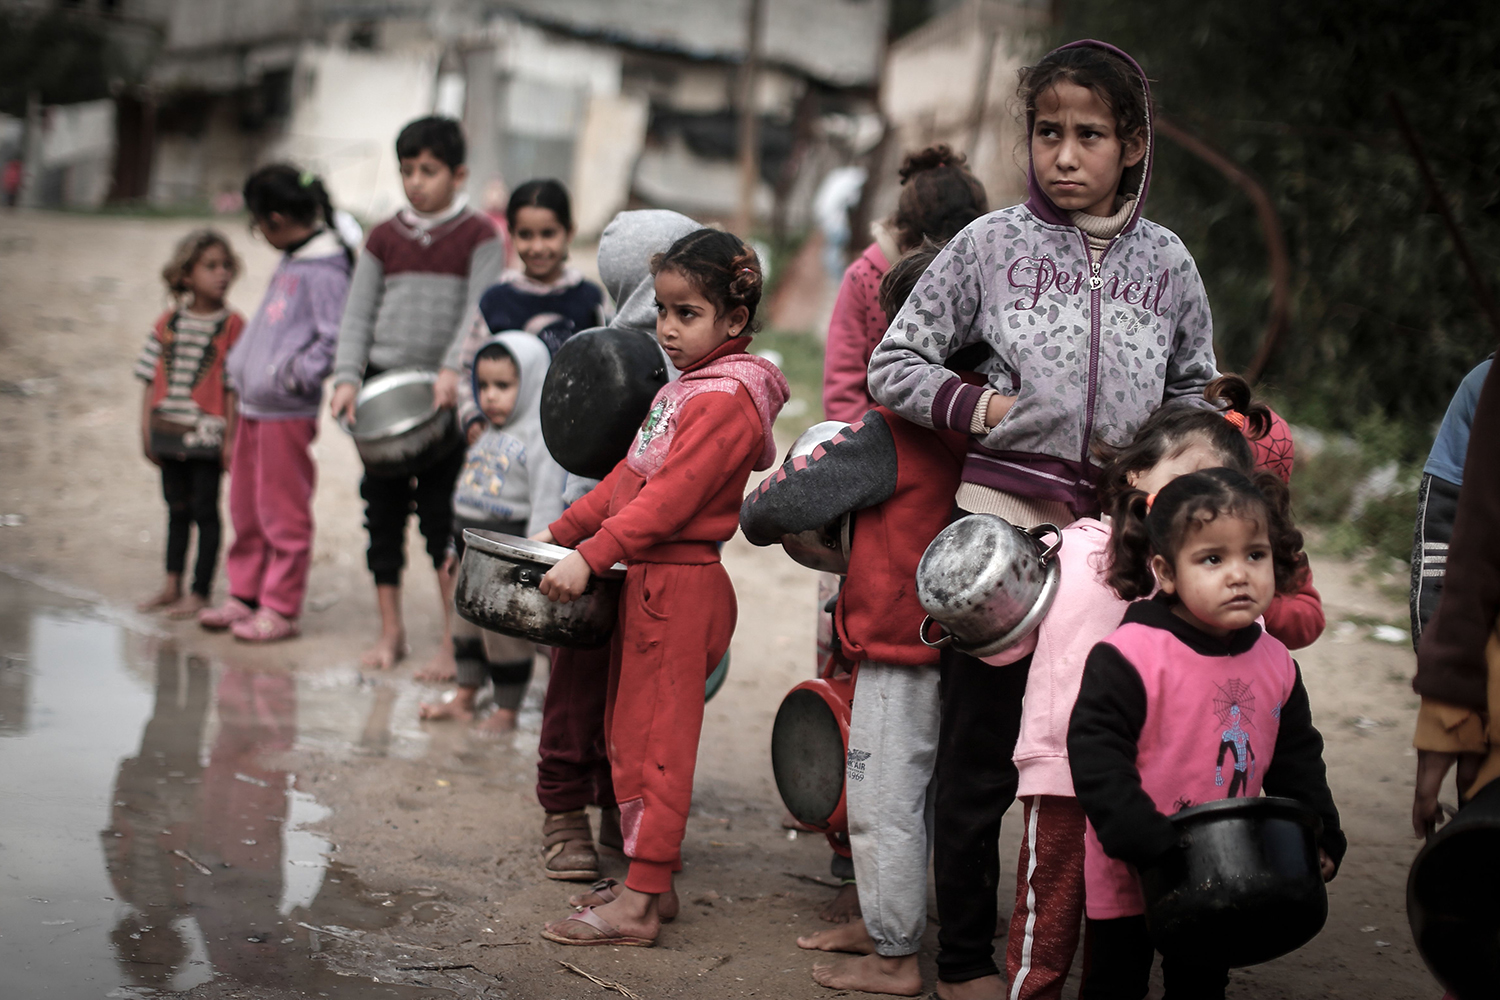 Palestinian children carry pots as they wait to receive a meal in Gaza City on Jan. 28. MAHMUD HAMS/AFP via Getty Images